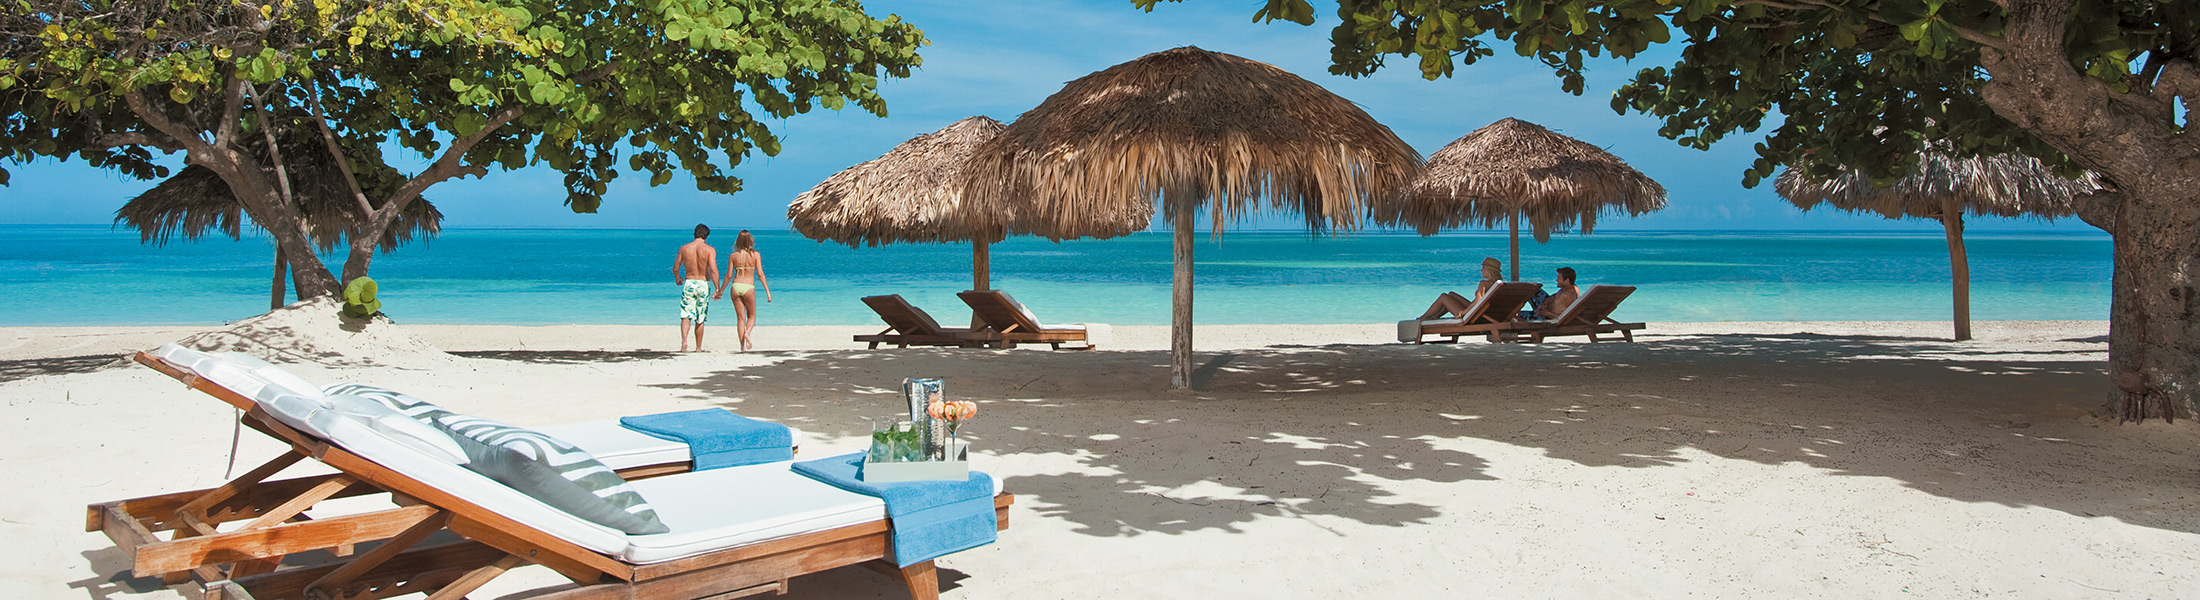 Sunlounges on the beach at Sandals Montego Bay